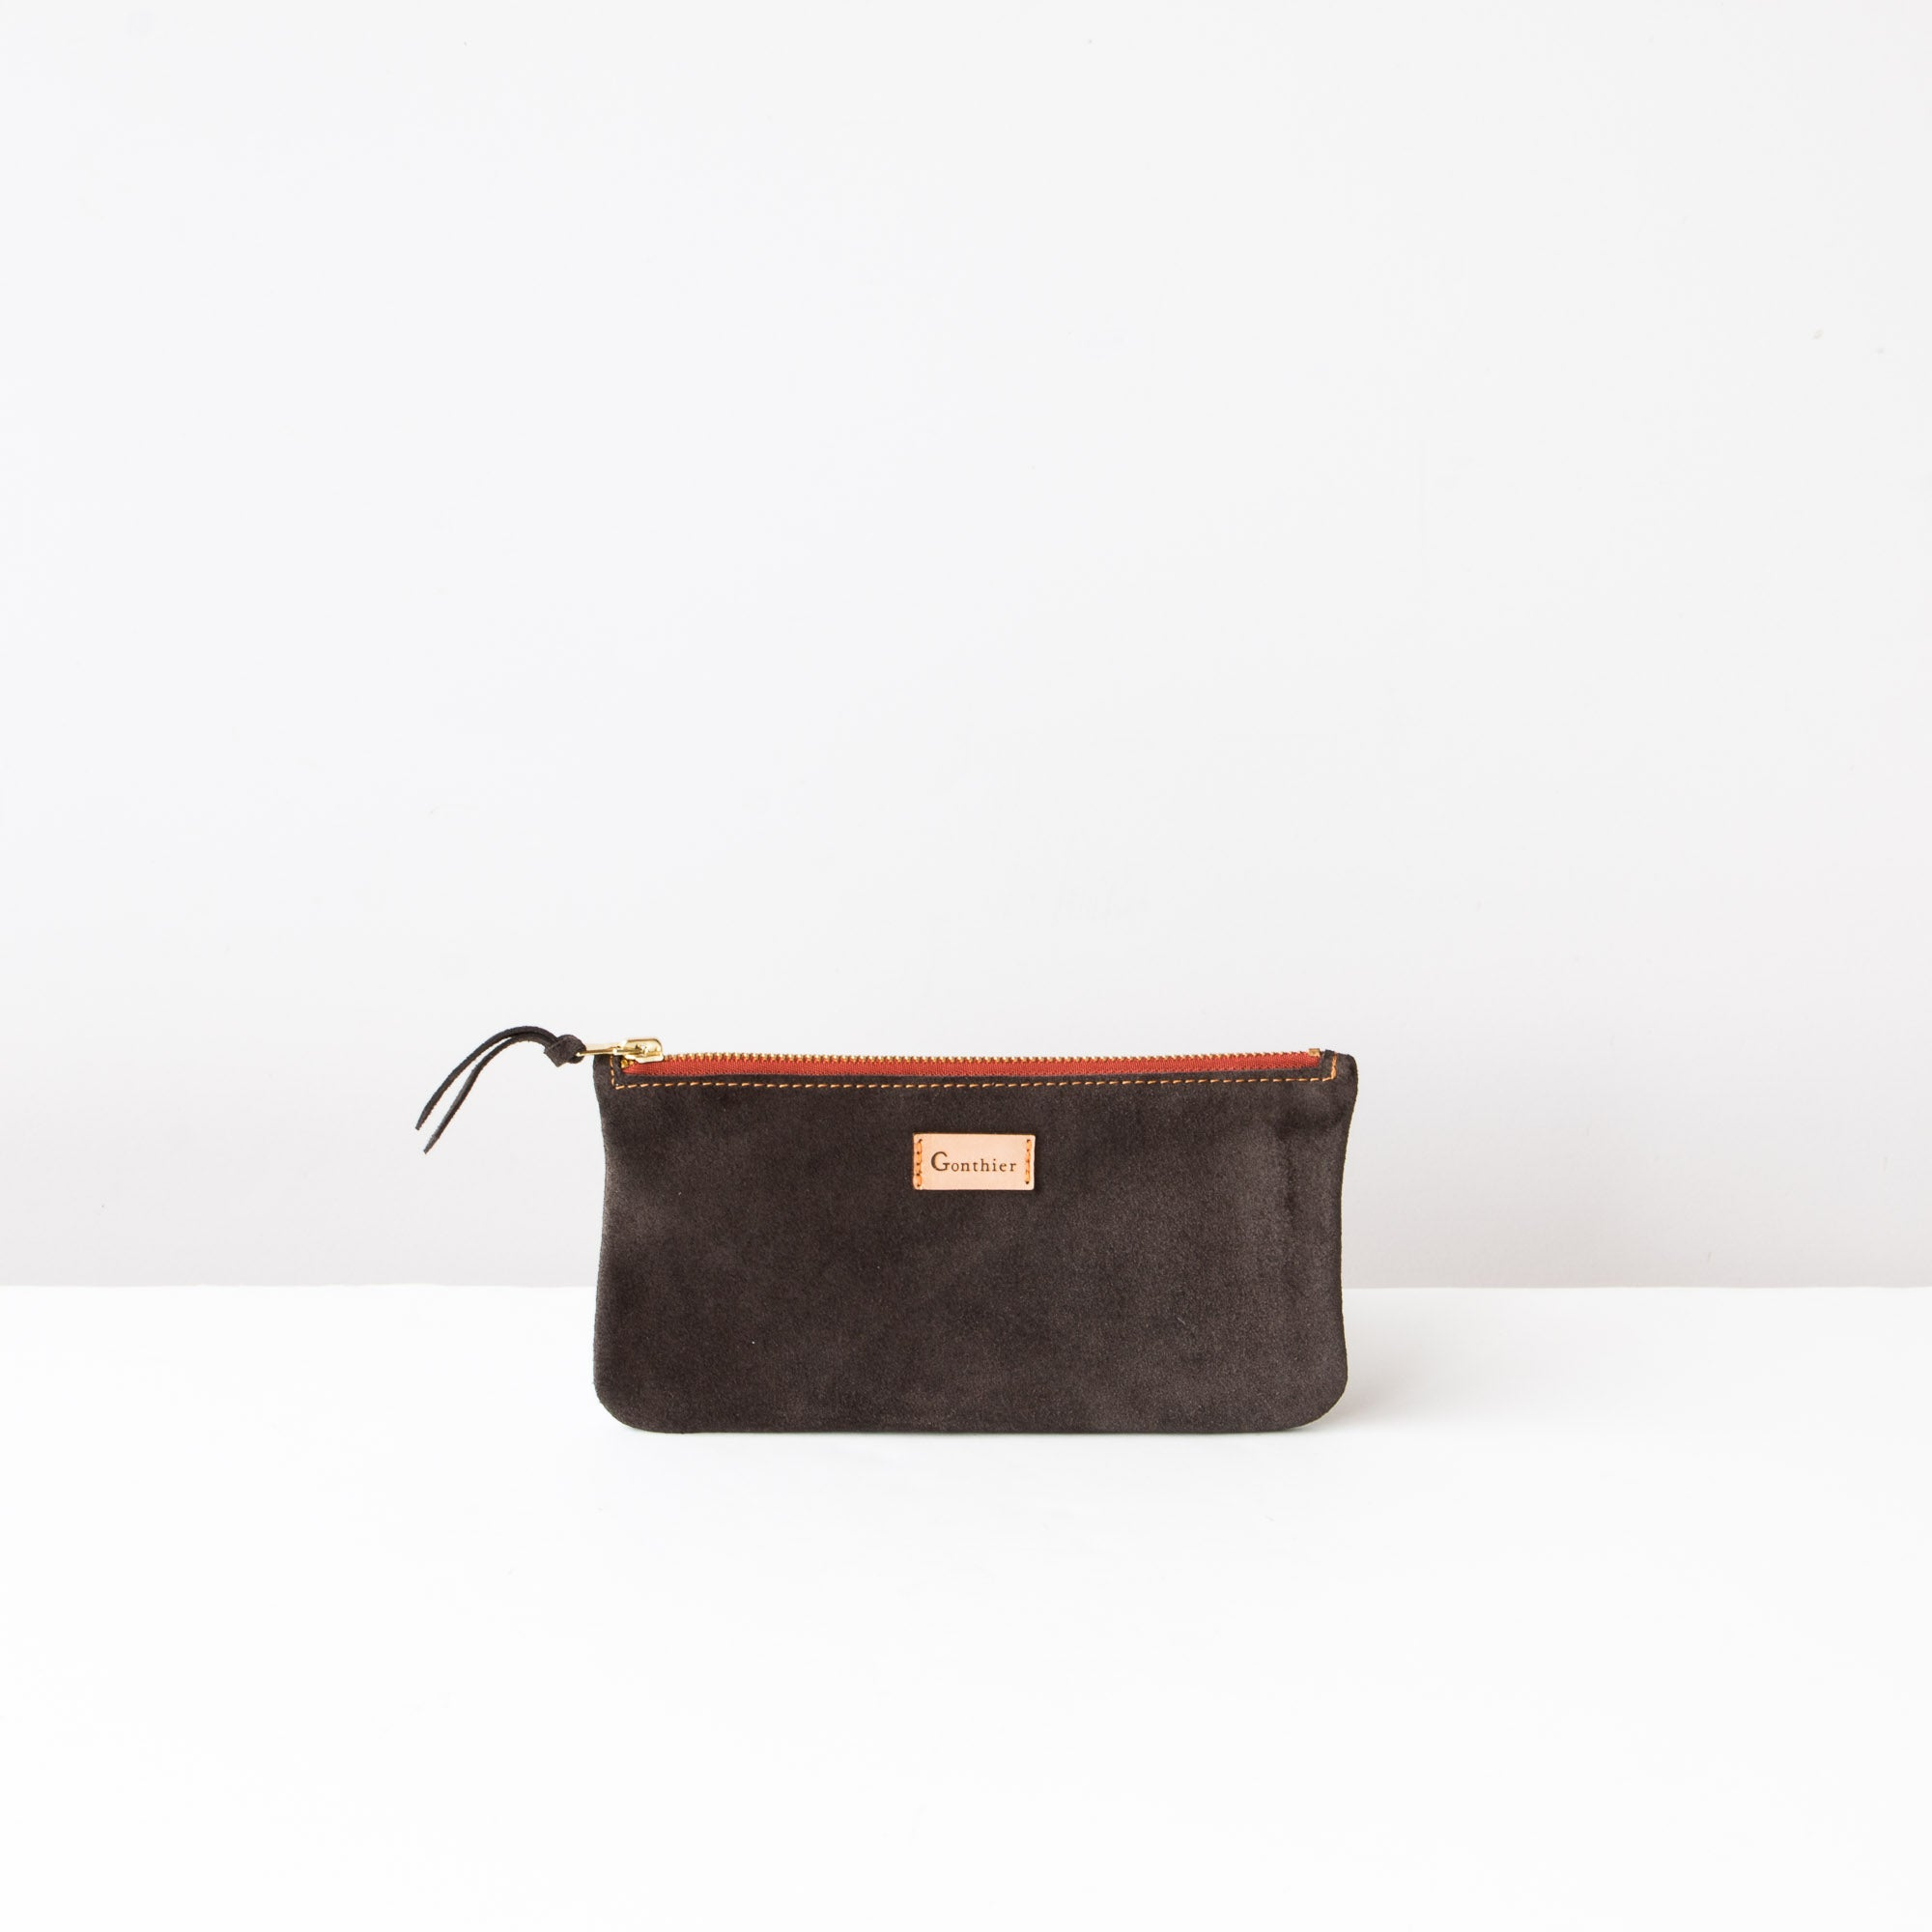 Greystone & Orange - Handmade Tall Pouch in Suede Calfskin - Sold by Chic & Basta